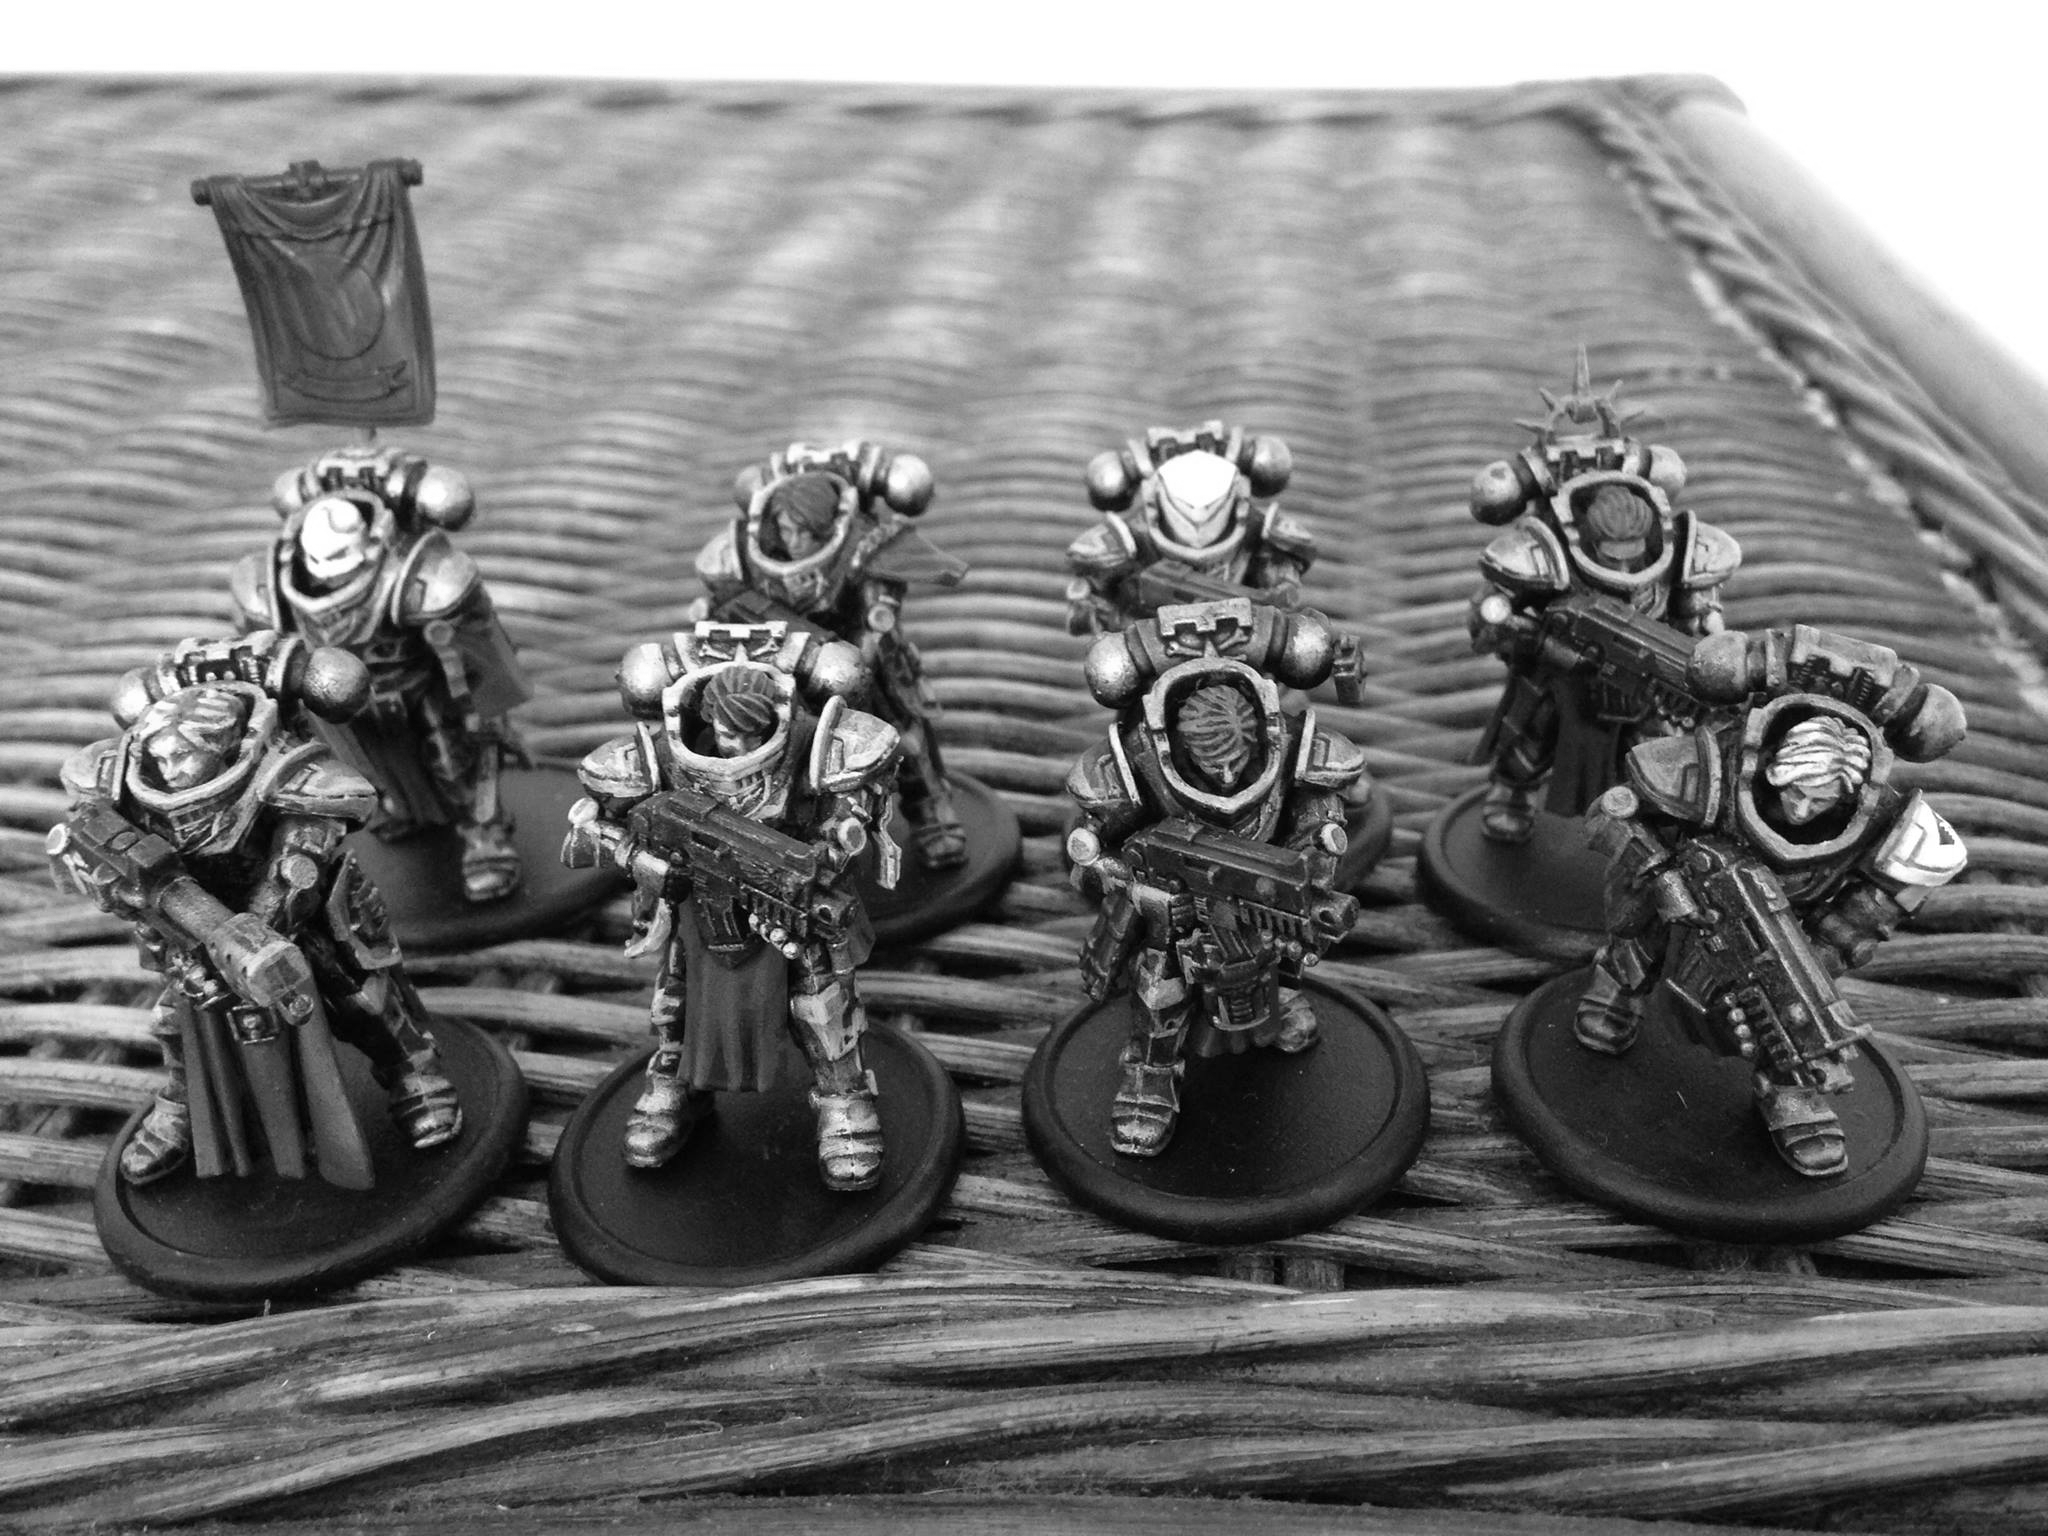 I'm really into tabletop and boardgames. Here's a small part of my custom Sisters of Battle force (Warhammer 40k). One of my goals for 2018 is to DM for a Dungeons & Dragons group.